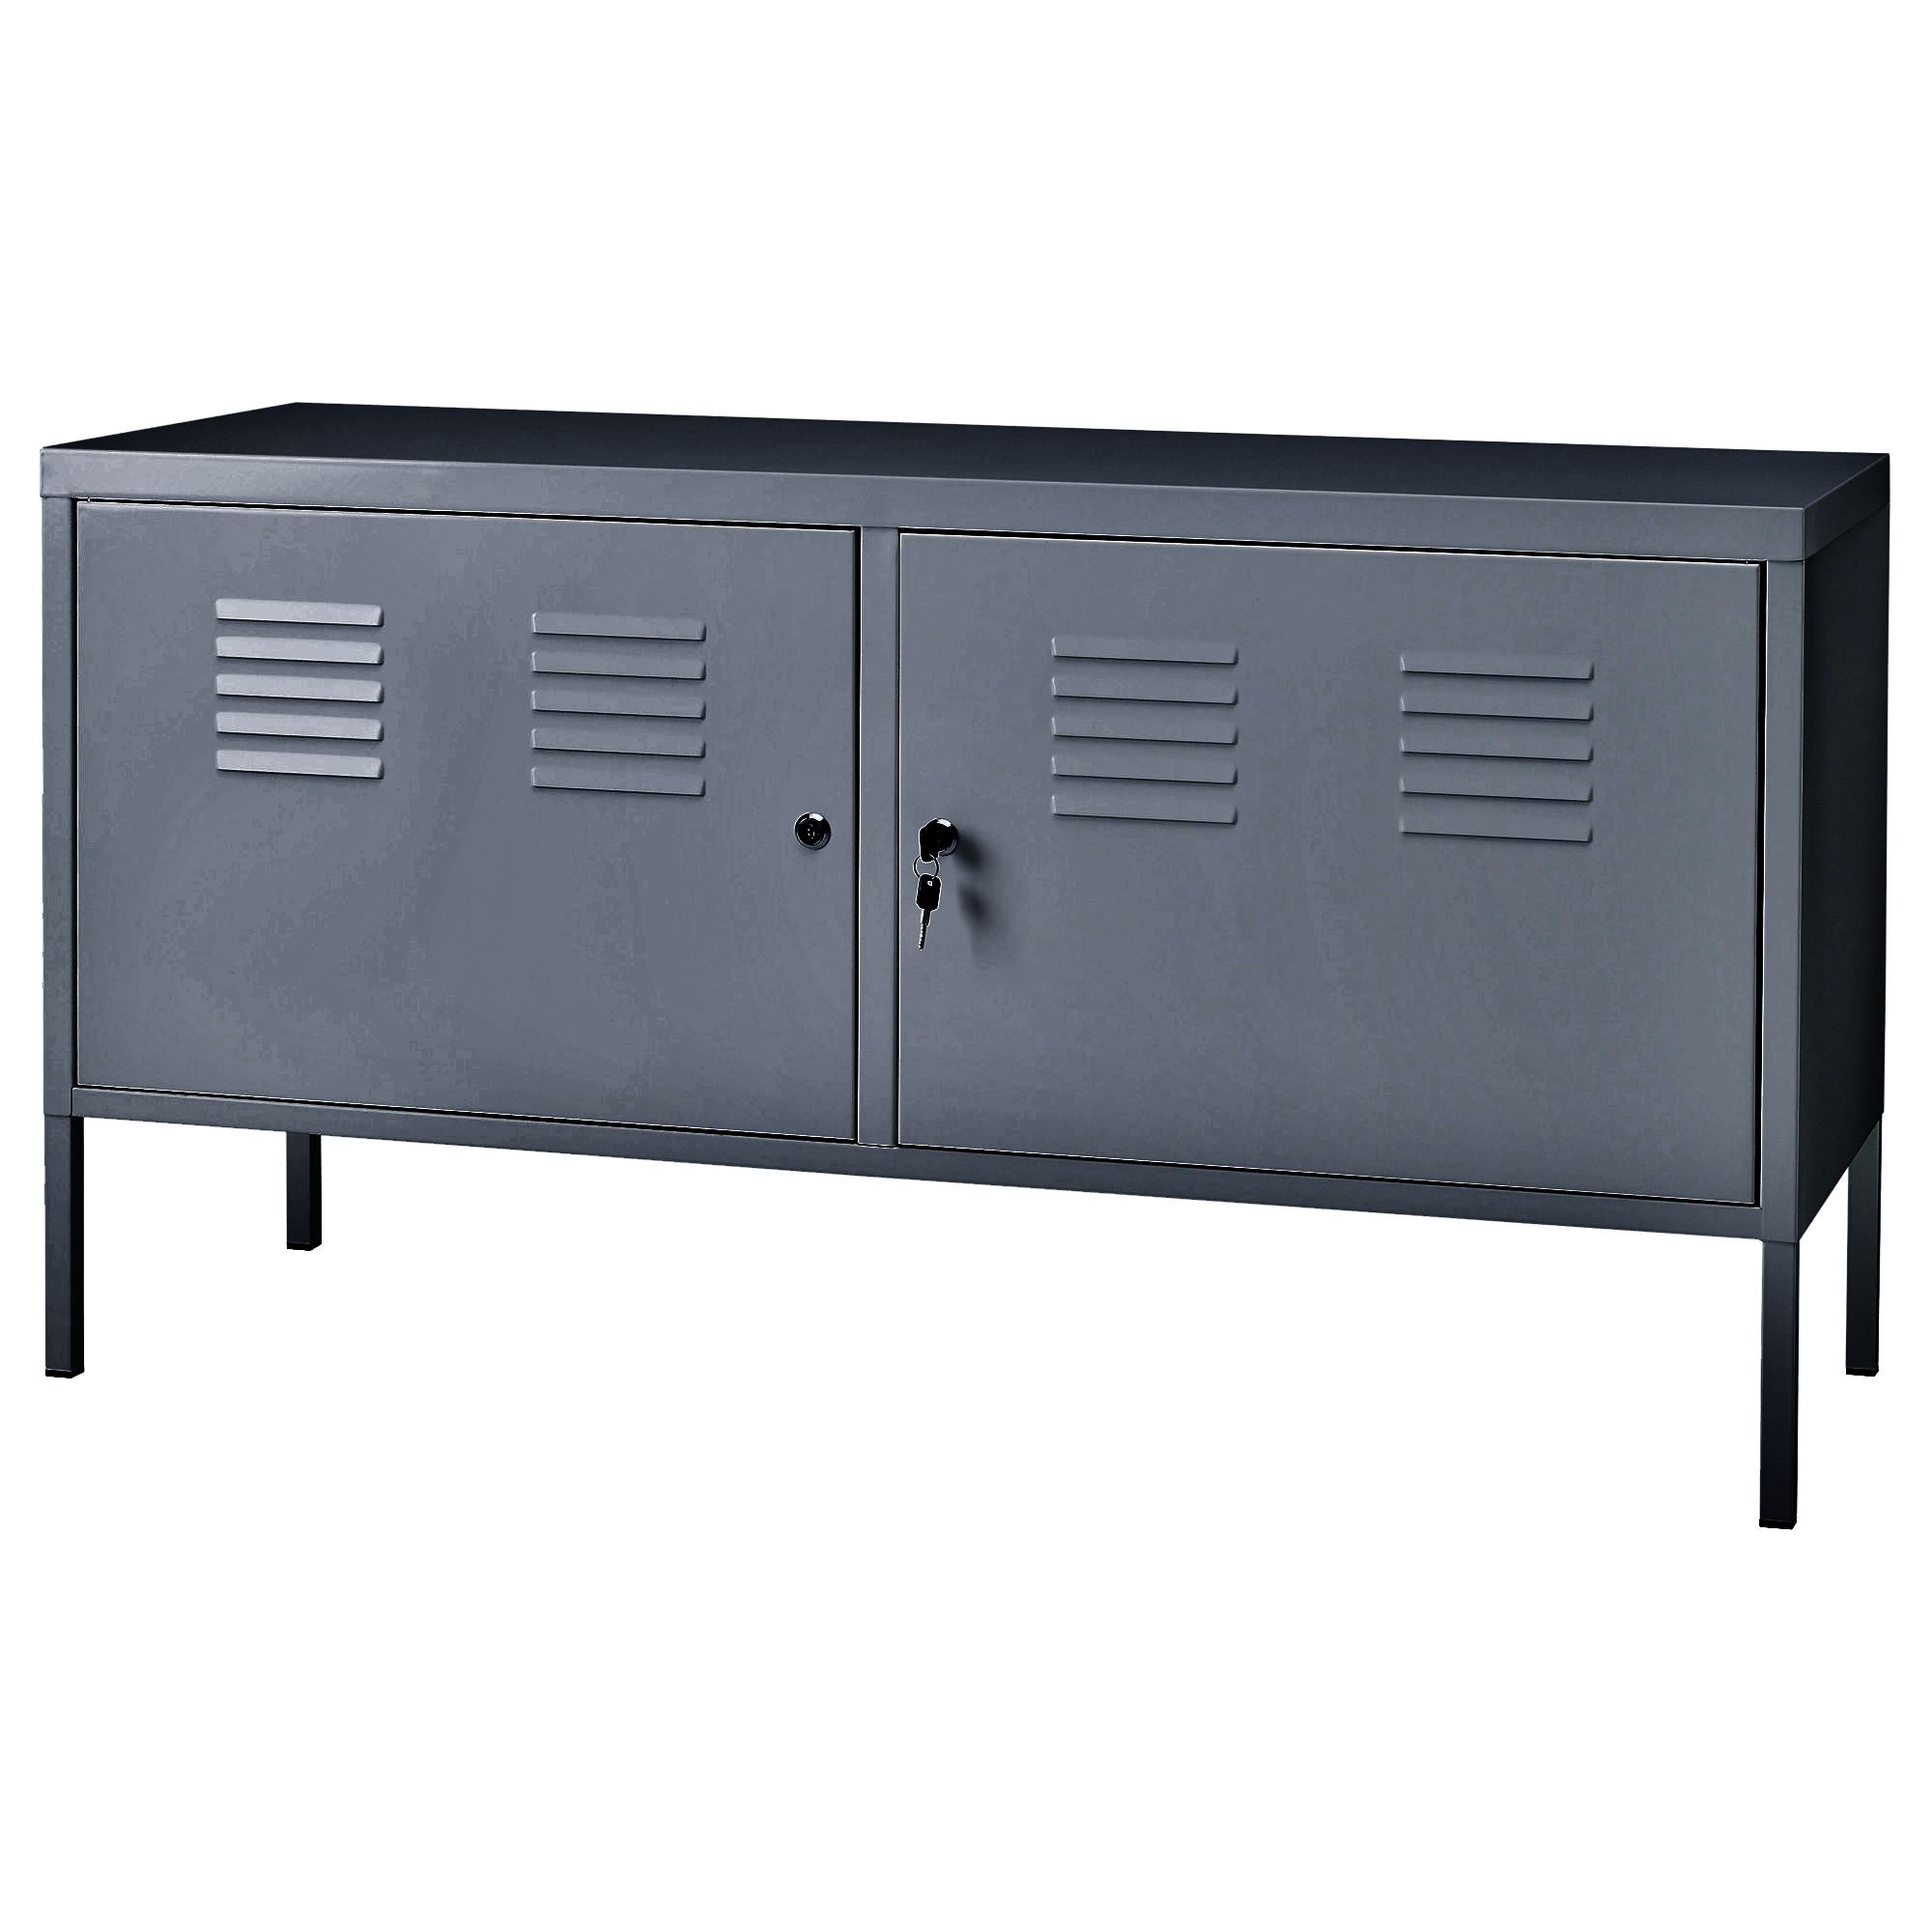 Lampadario Ikea Ps 2019.Spray Paint An Ikea Ps Tv Cabinet A Dark Seal Grey To Blend With My